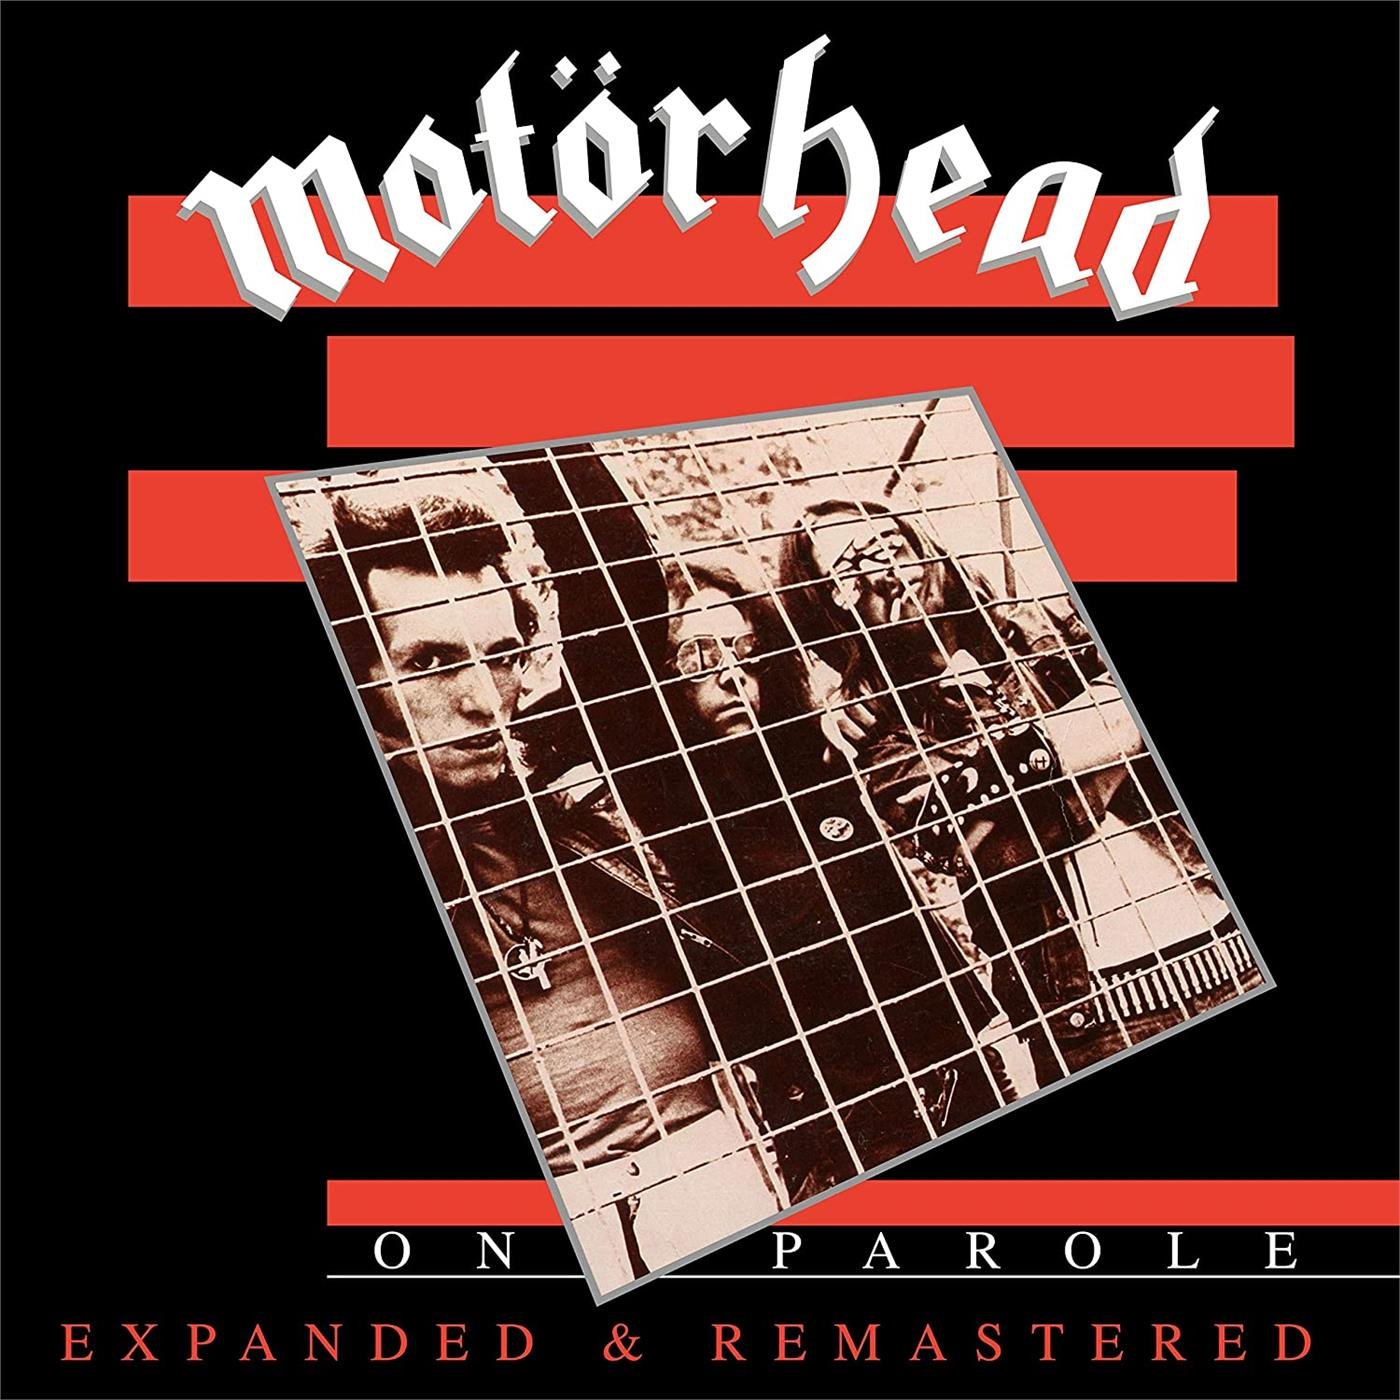 0190295264659 BMG Rights Management  Motörhead On Parole - Expanded & Remastered (CD)